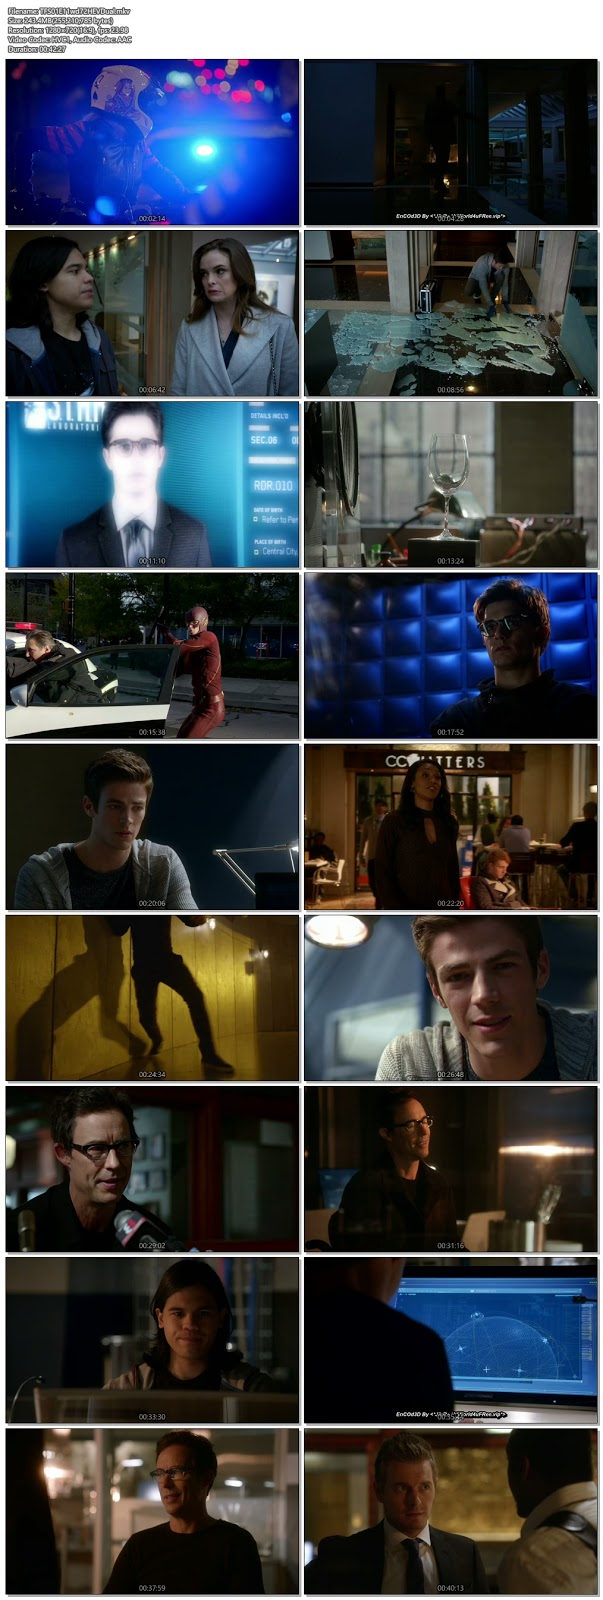 The Flash S01E11 Dual Audio 720p BRRip 250MB HEVC x265, hollwood tv series The Flash S01E11 Dual Audio 480p 720p hdtv tv show hevc x265 hdrip 250mb 270mb free download or watch online at world4ufree.fun